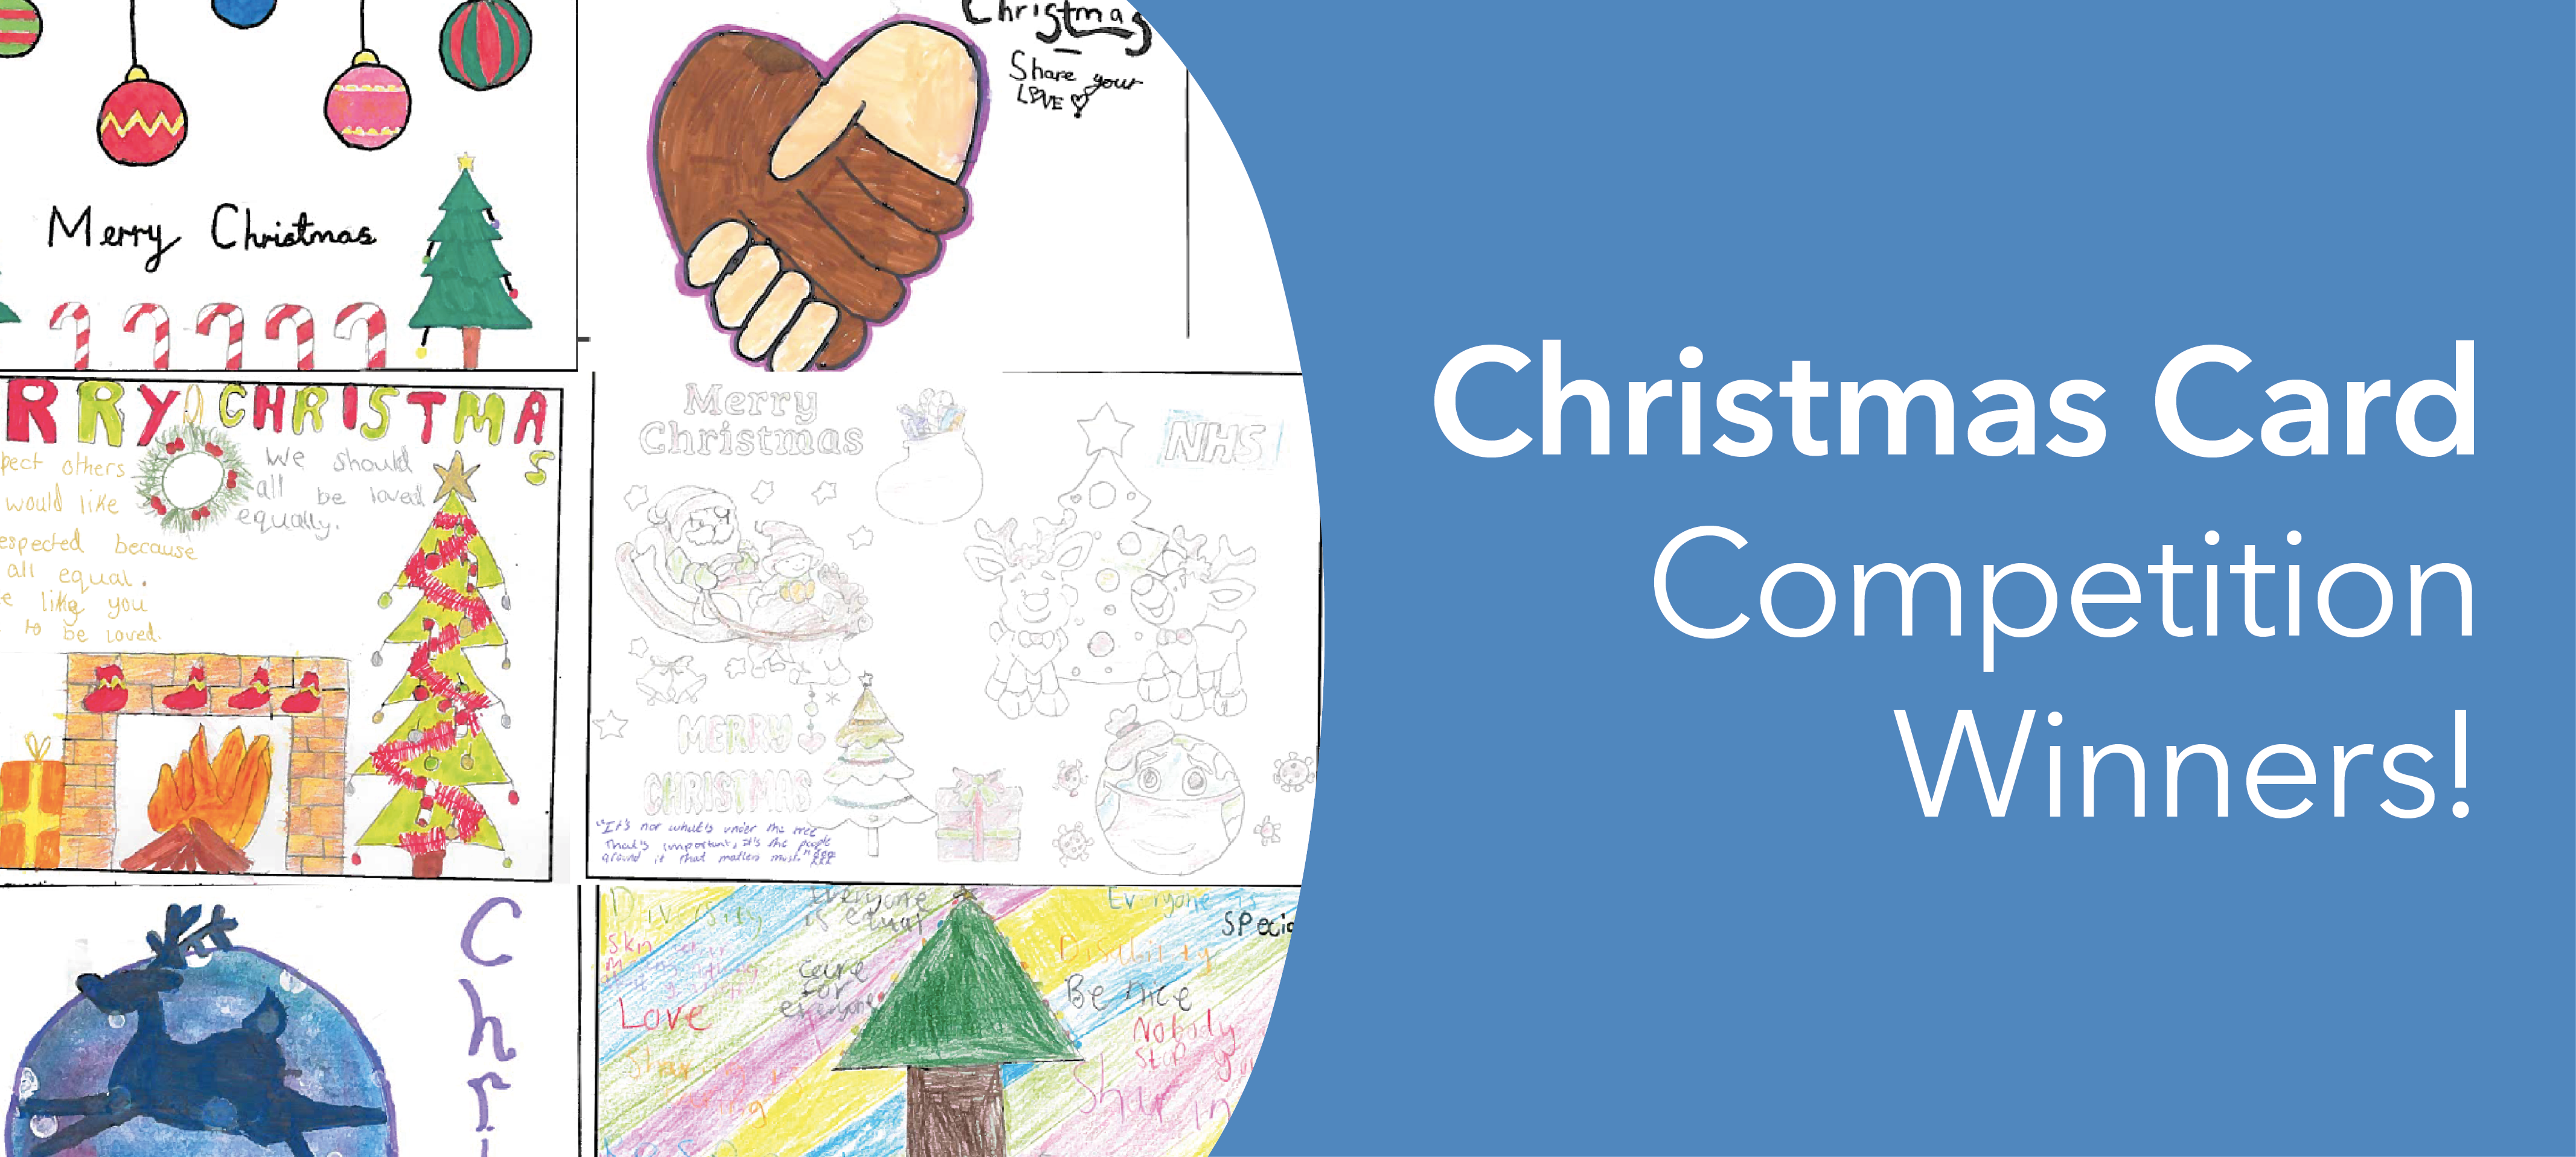 Our Christmas Card competition winners!